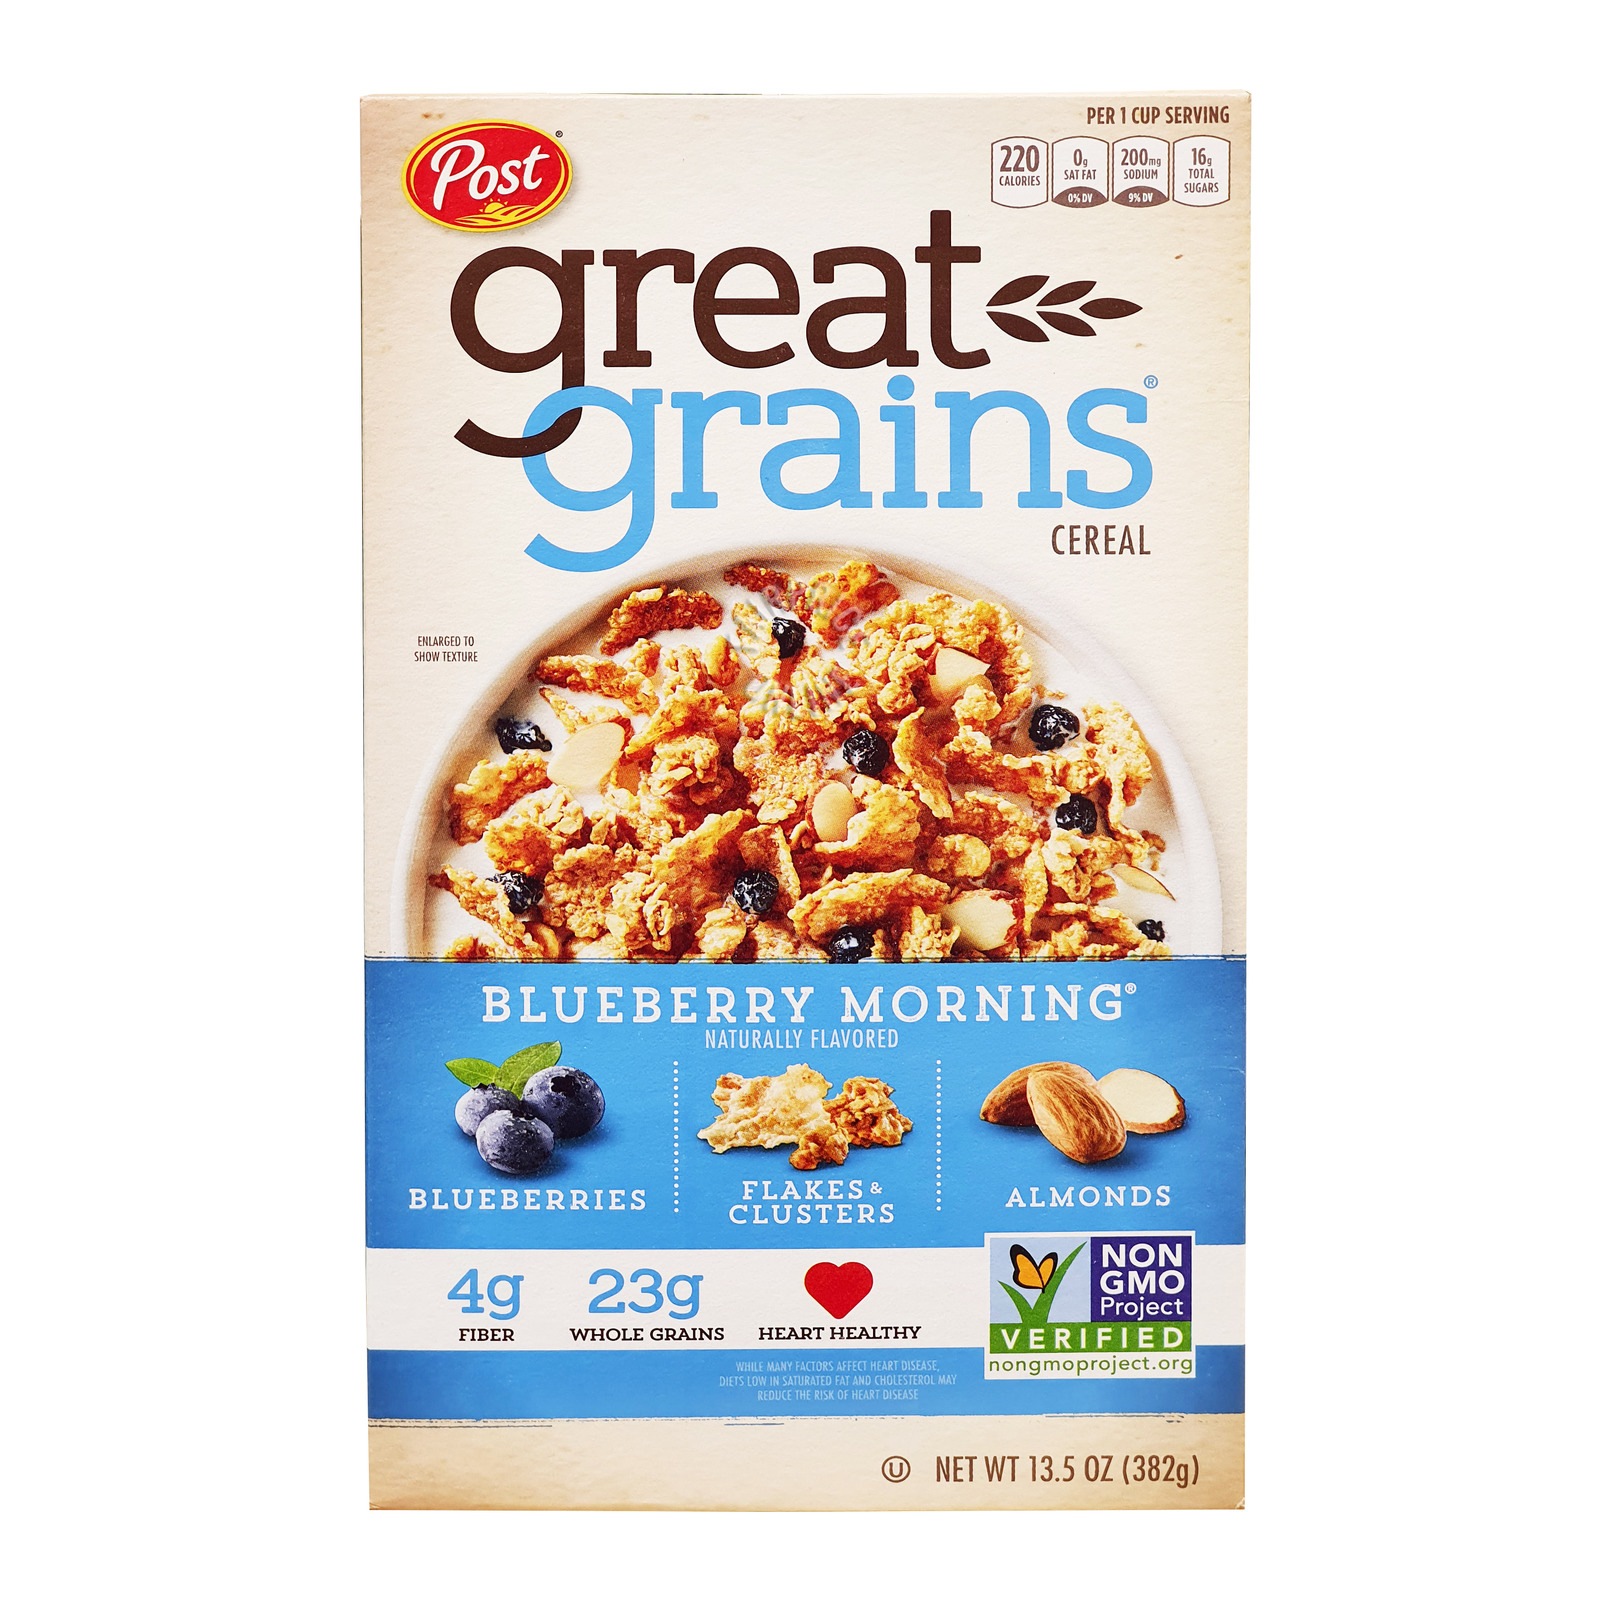 Post Great Grains Cereal - Blueberry Morning